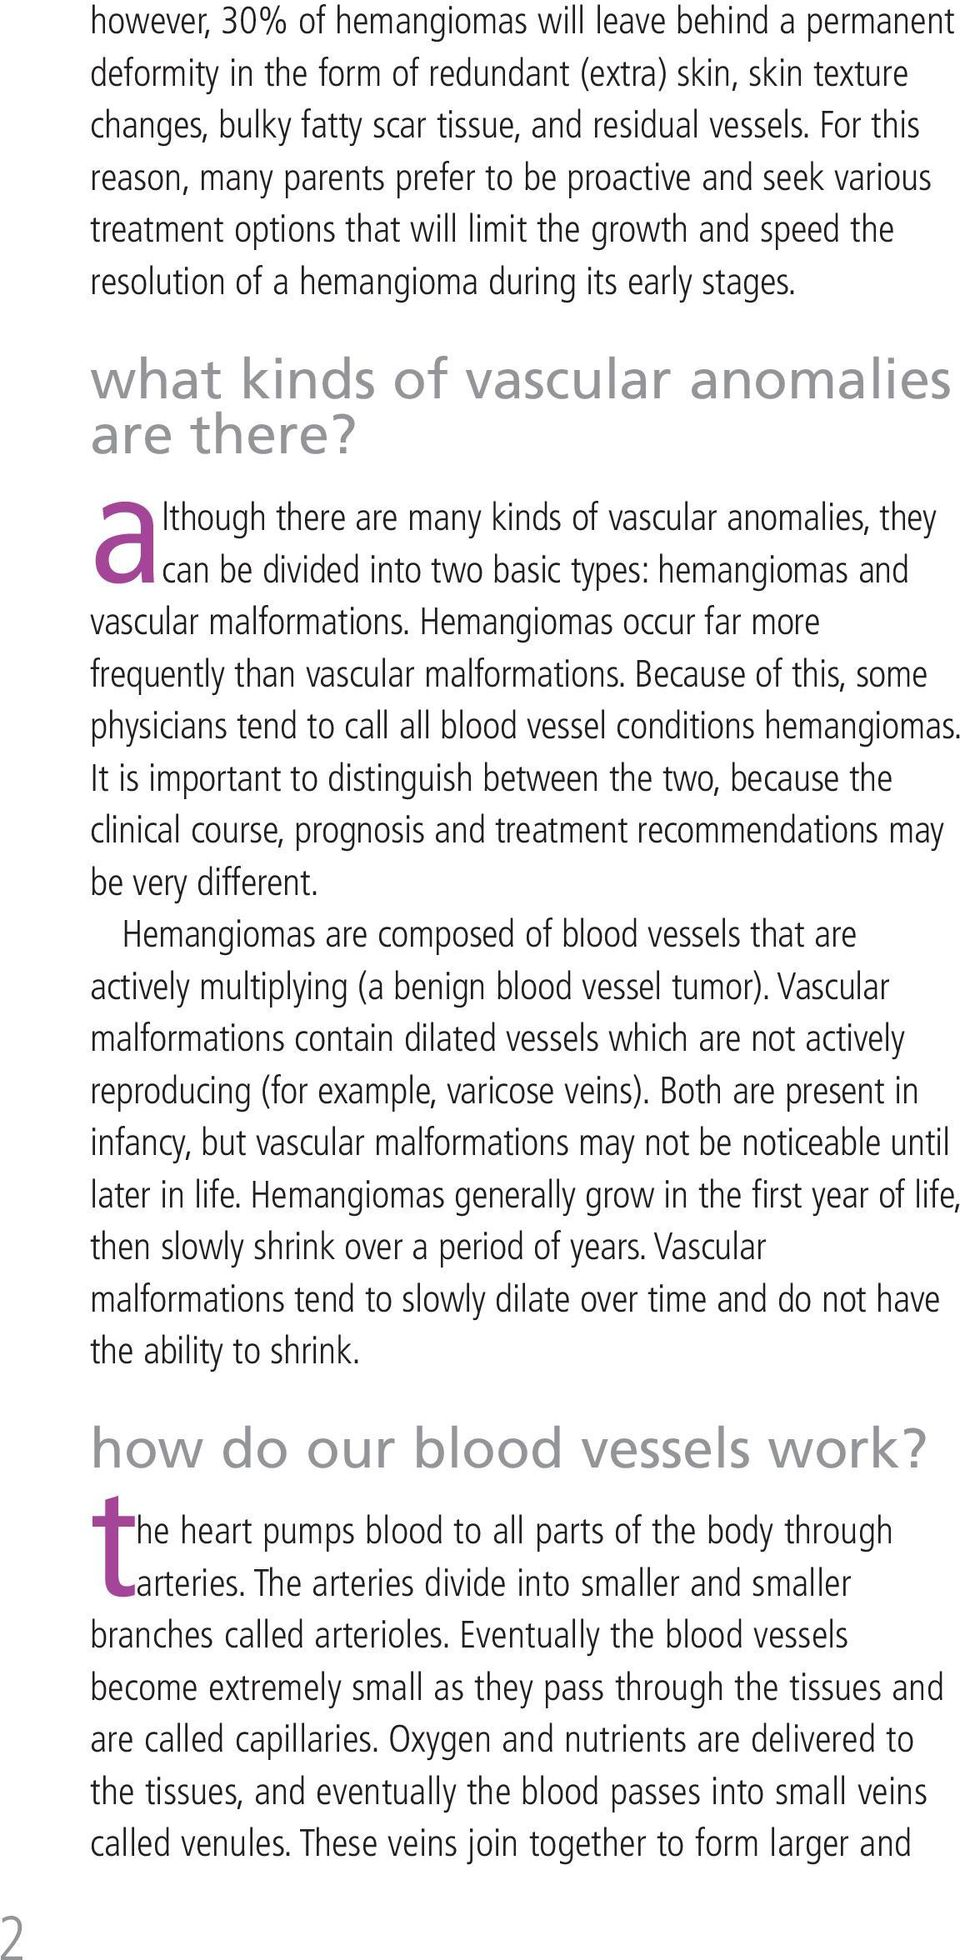 what kinds of vascular anomalies are there? although there are many kinds of vascular anomalies, they can be divided into two basic types: hemangiomas and vascular malformations.